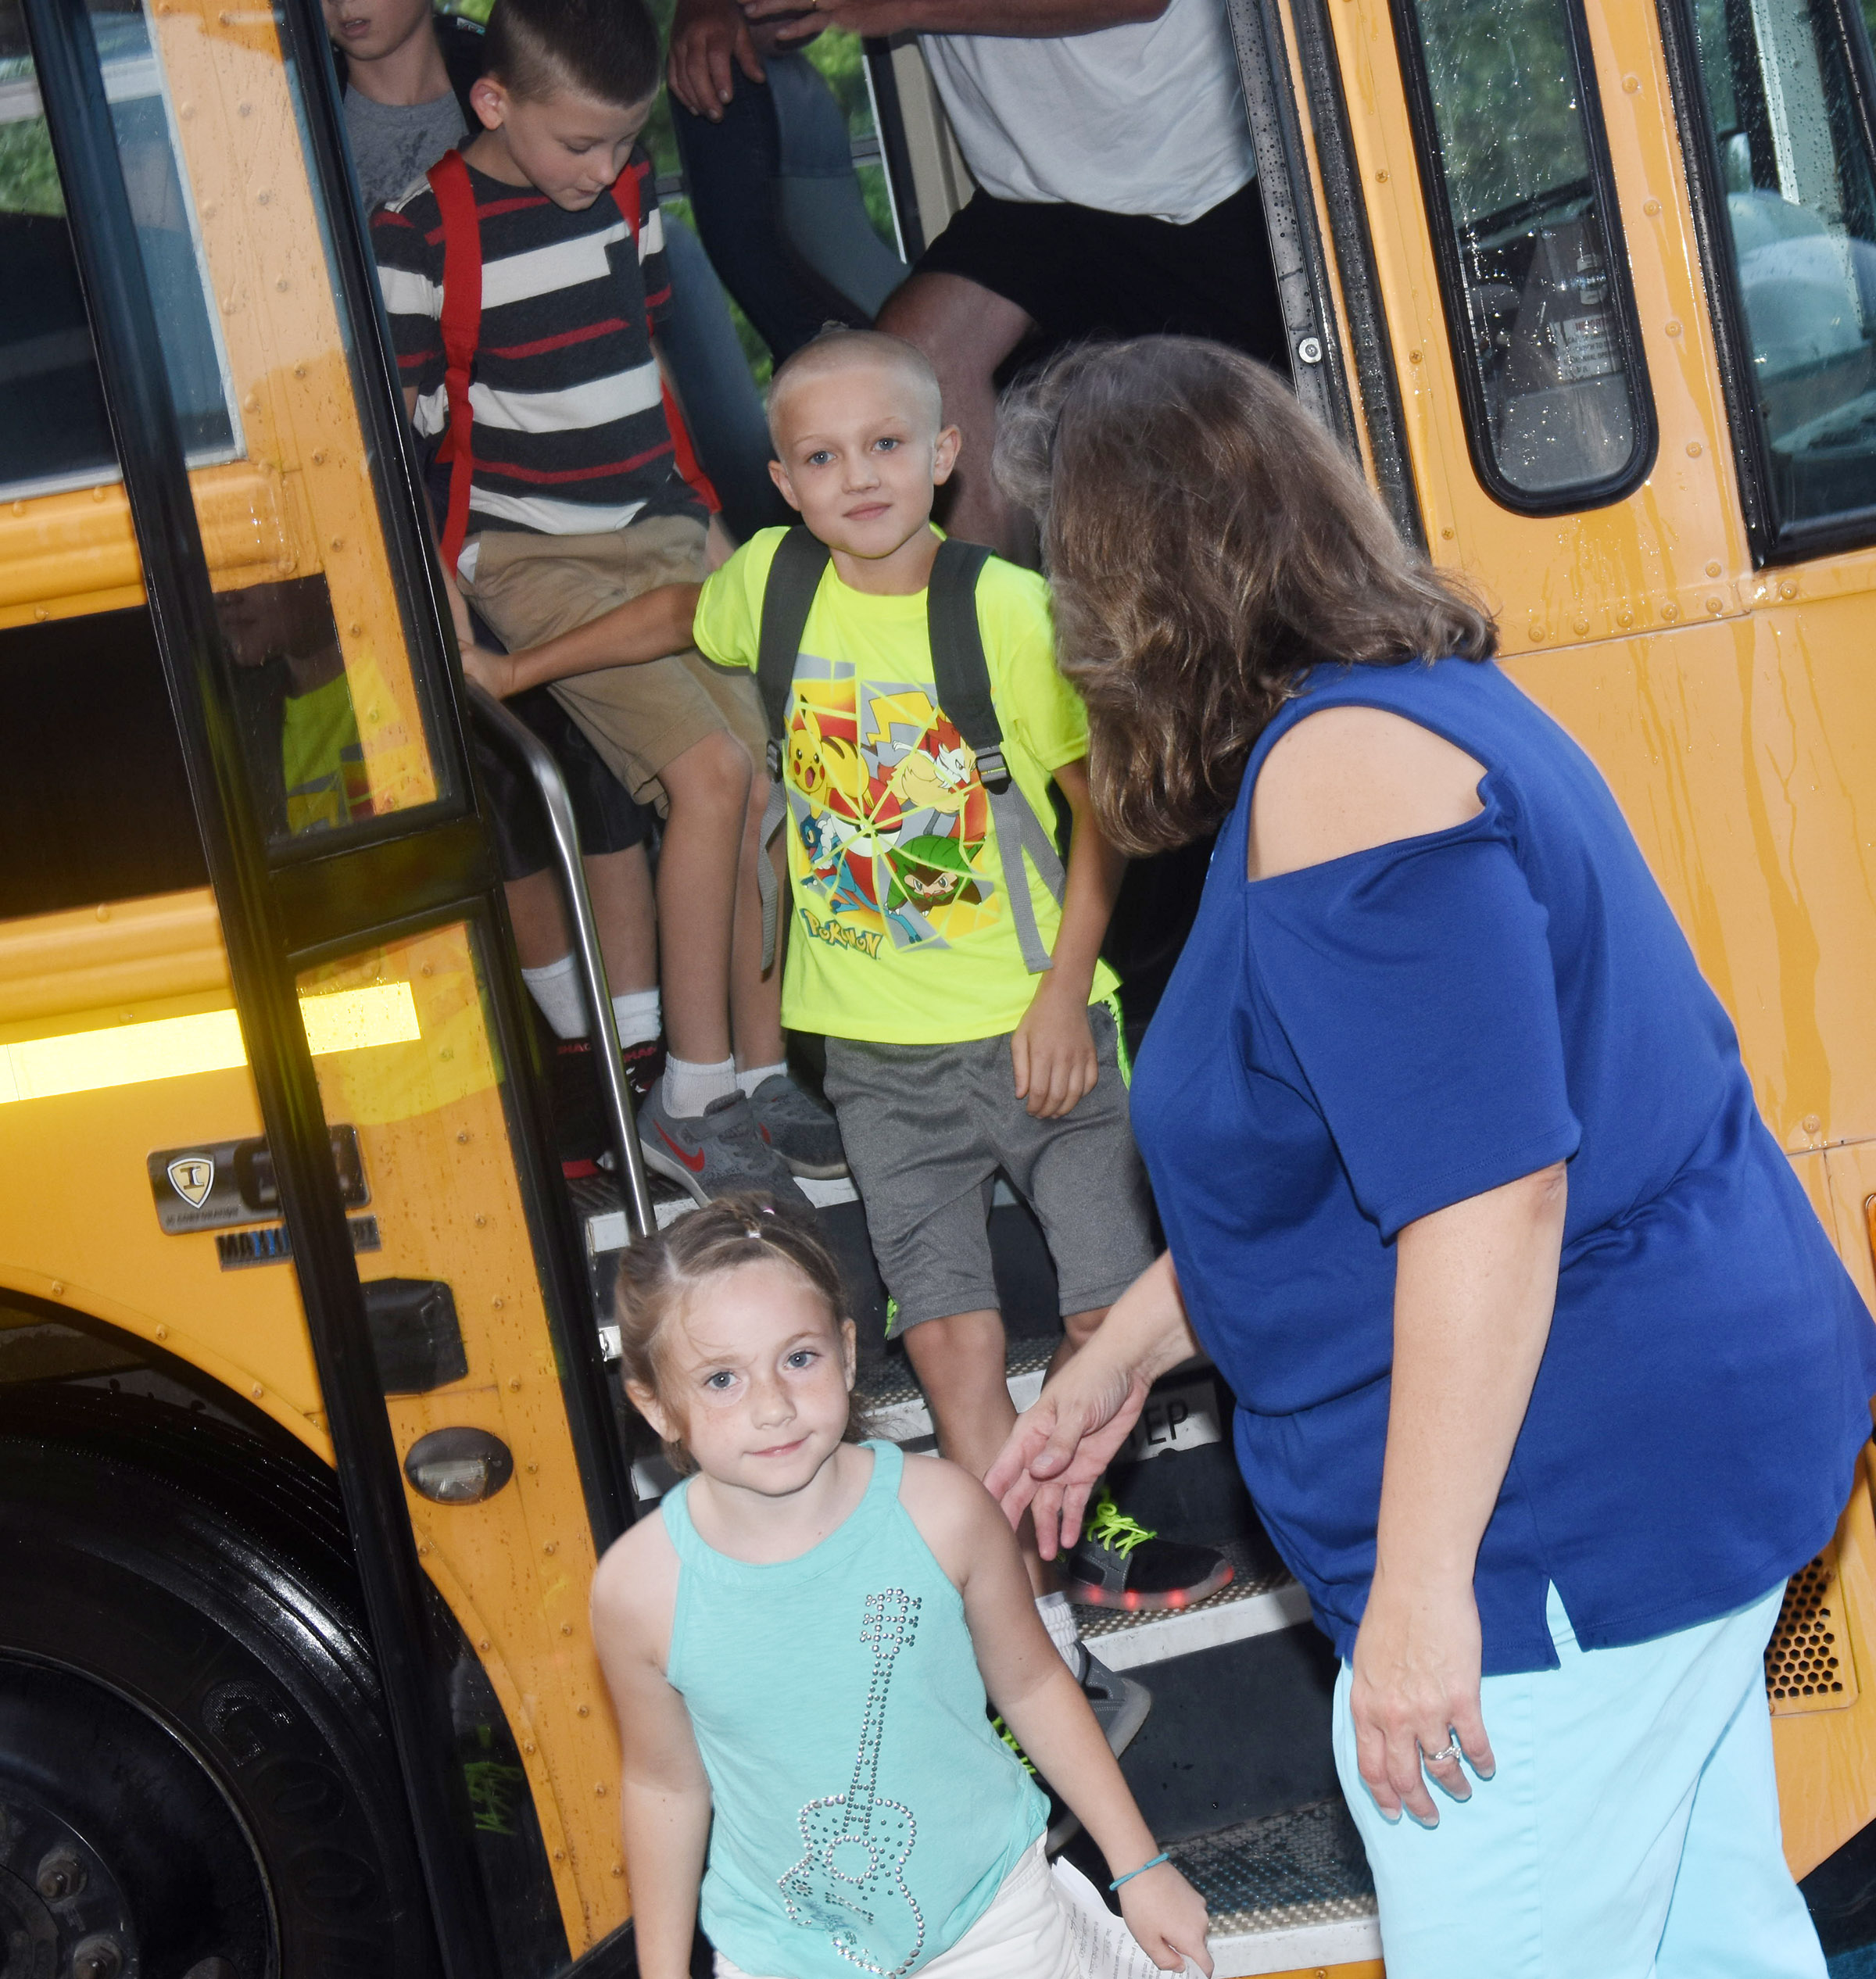 Campbellsville Elementary School music teacher Cyndi Chadwick helps students off the bus as they arrive at school.